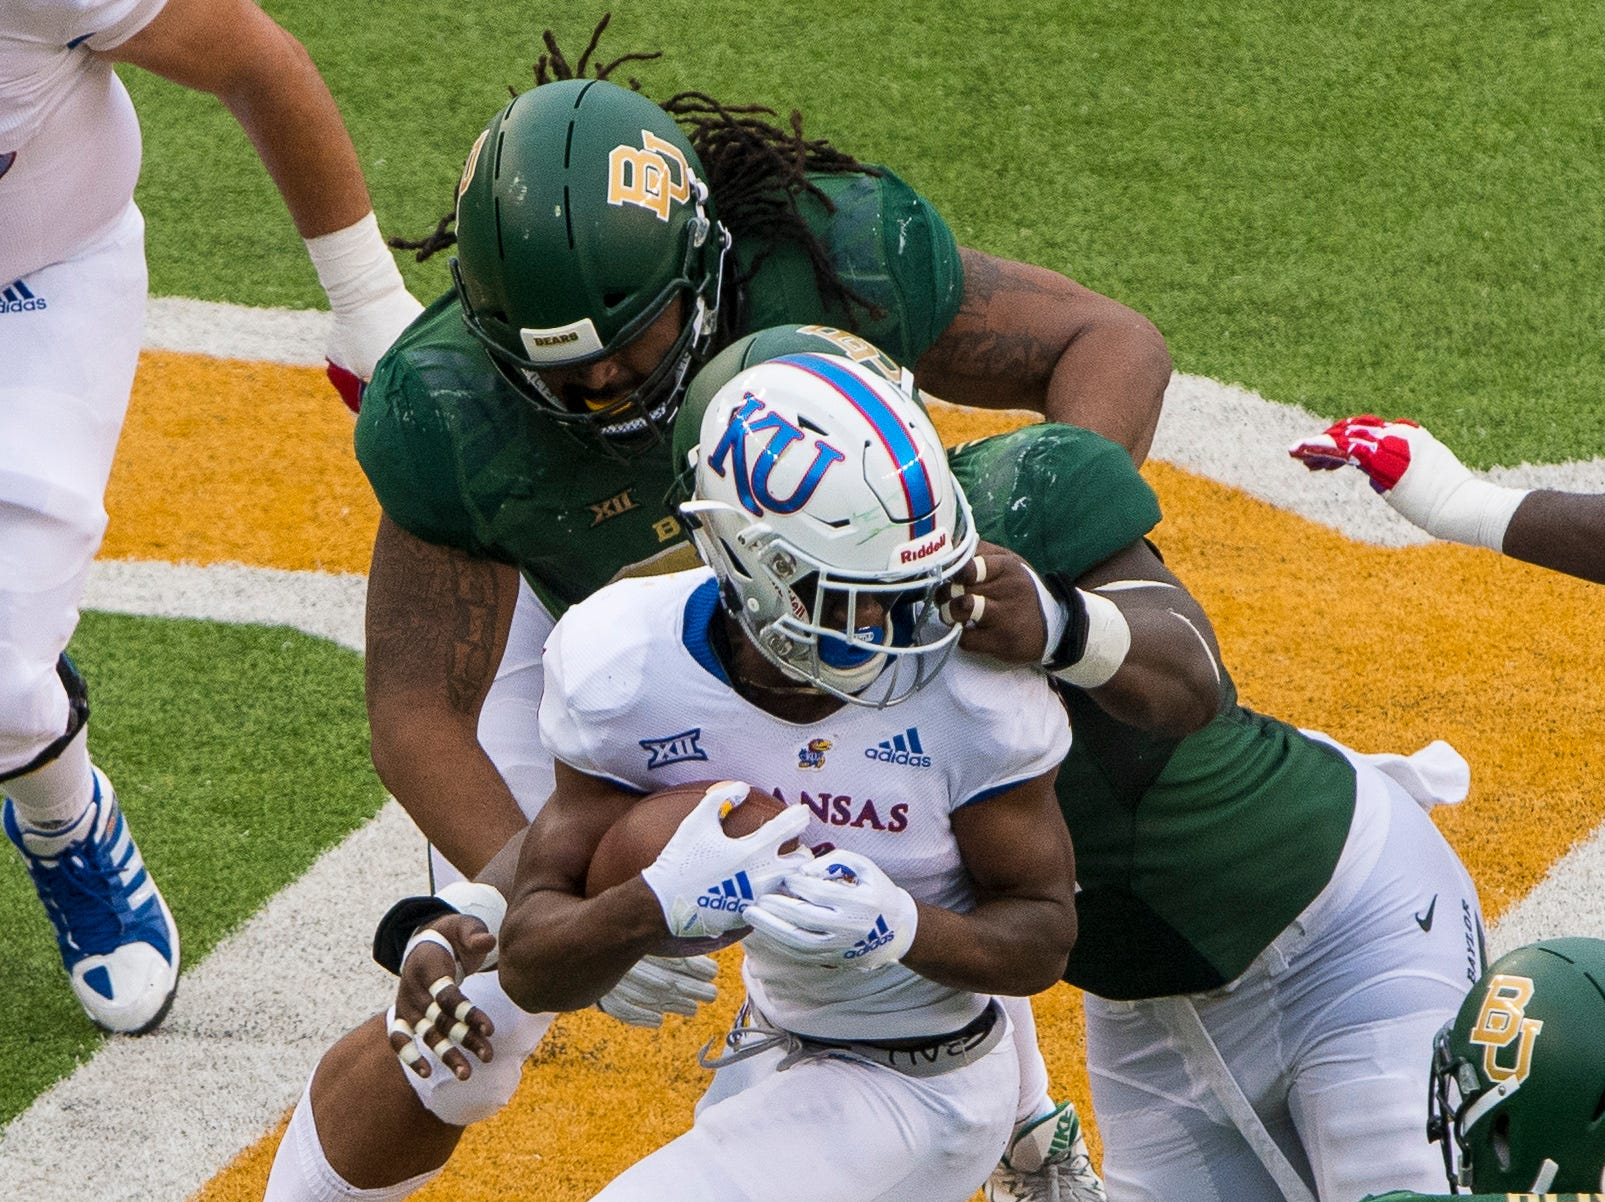 The Baylor Bears defense is called for a face-mask penalty on Kansas Jayhawks running back Pooka Williams Jr. (1) during the second half at McLane Stadium.